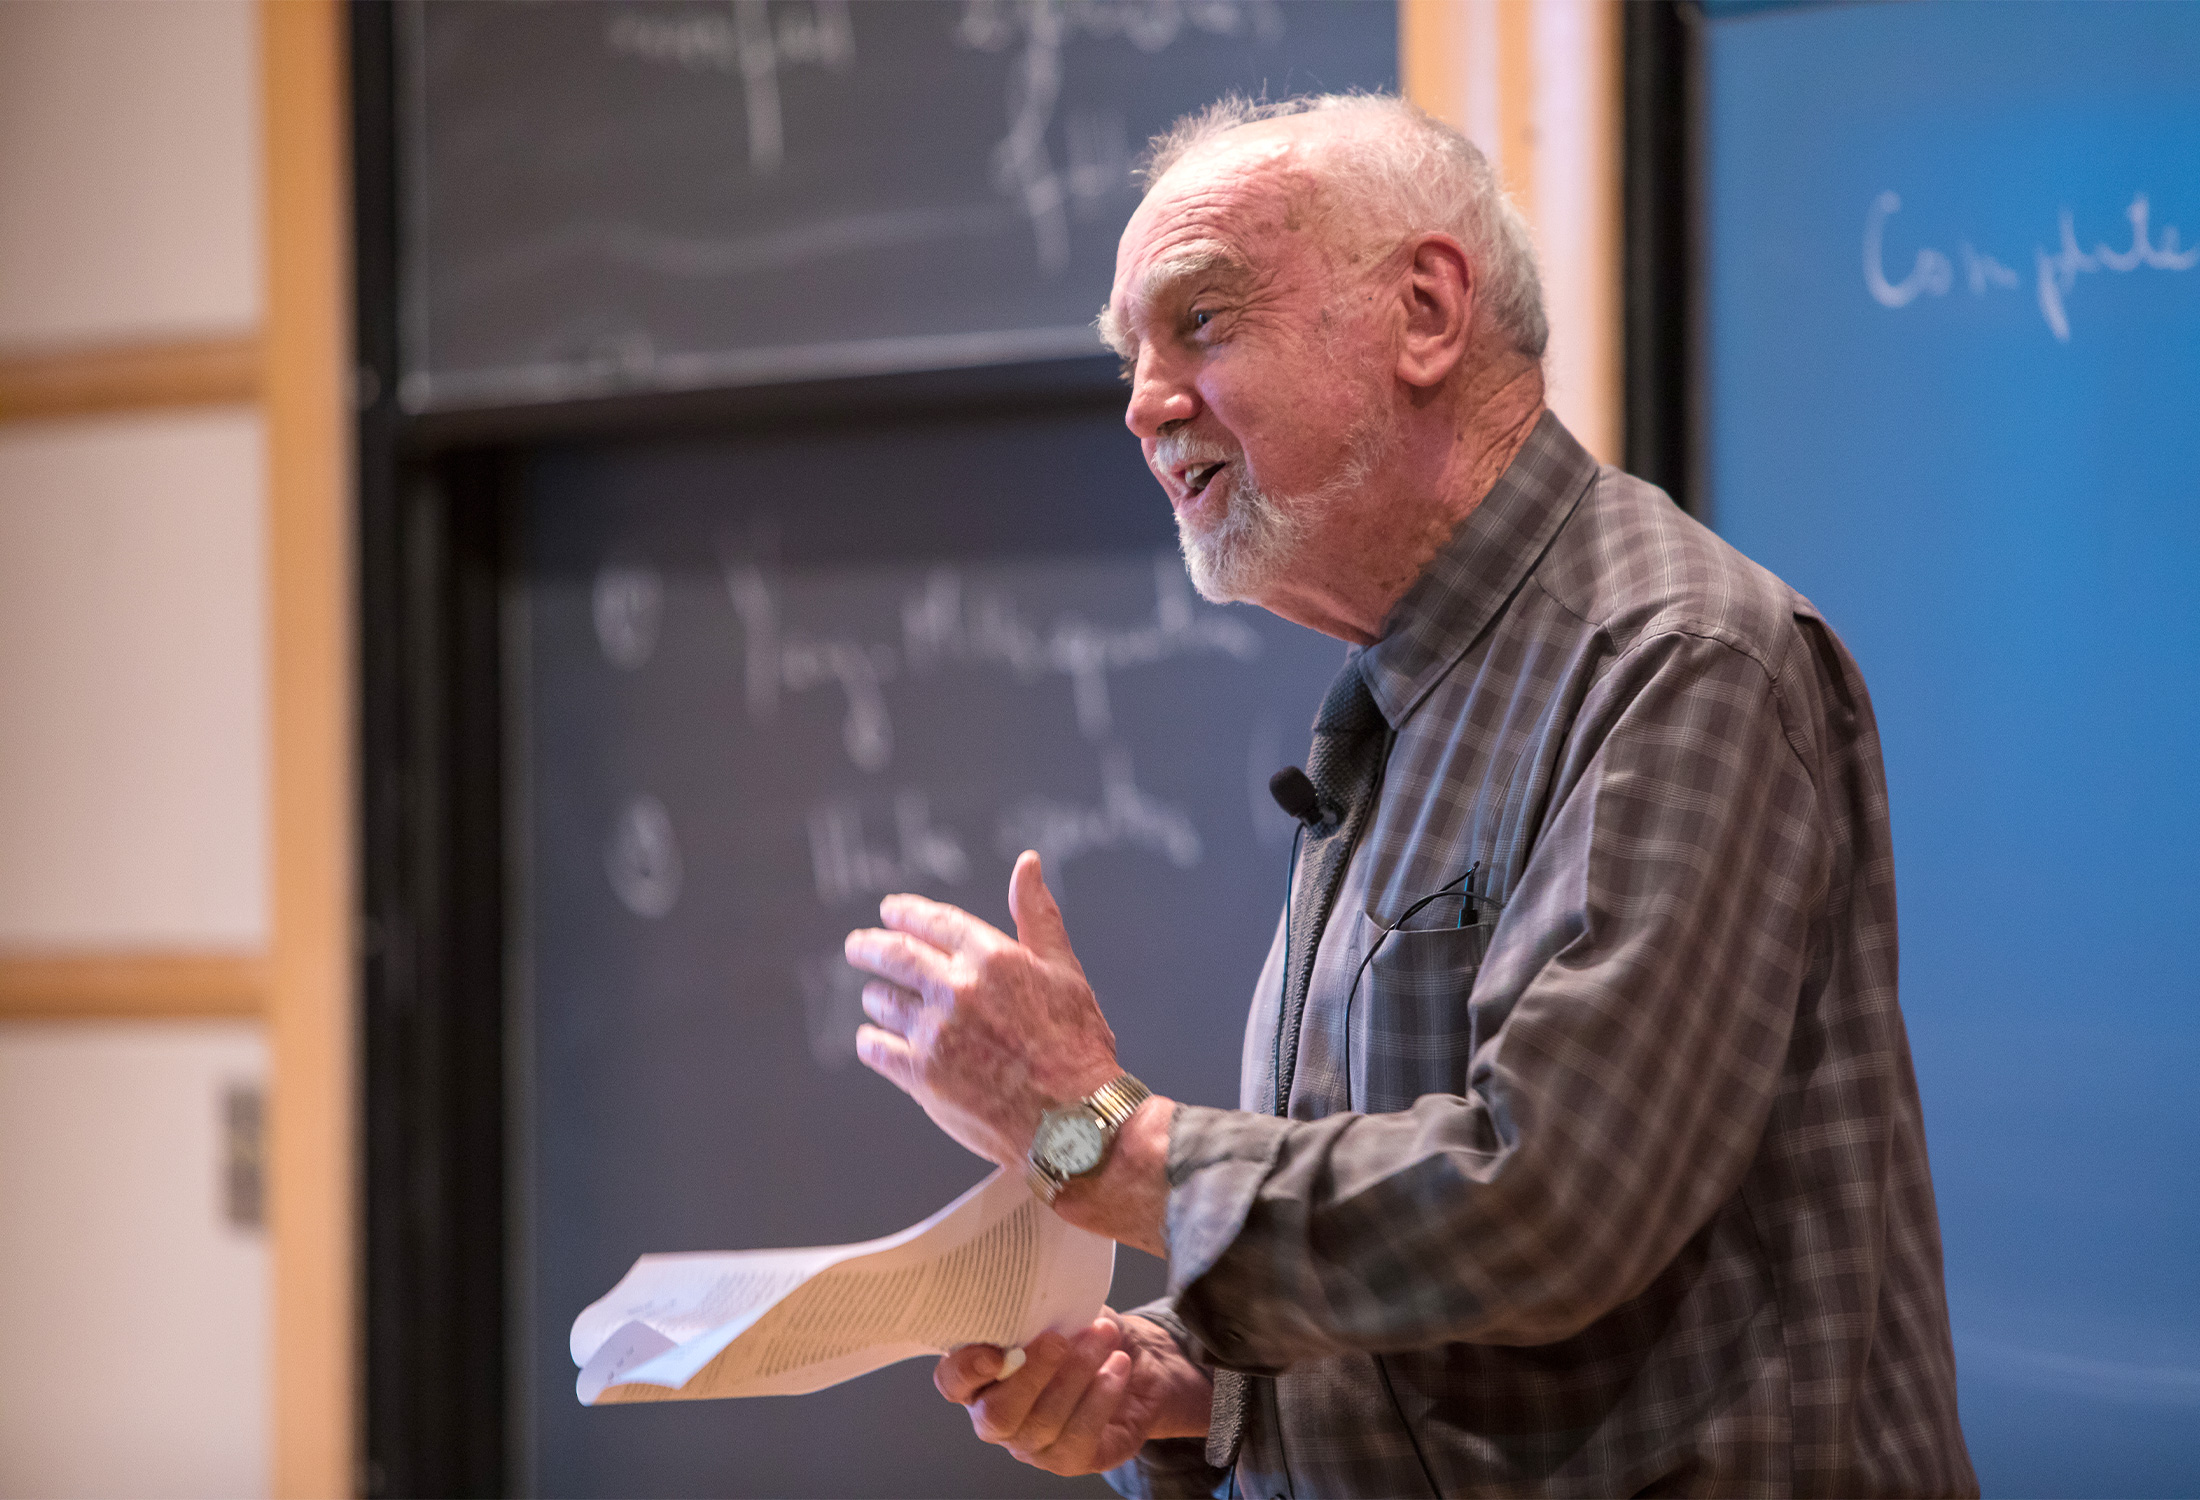 A photograph of the mathematician Robert Langlands giving a talk at the Institue for Advanced Study in 2016.